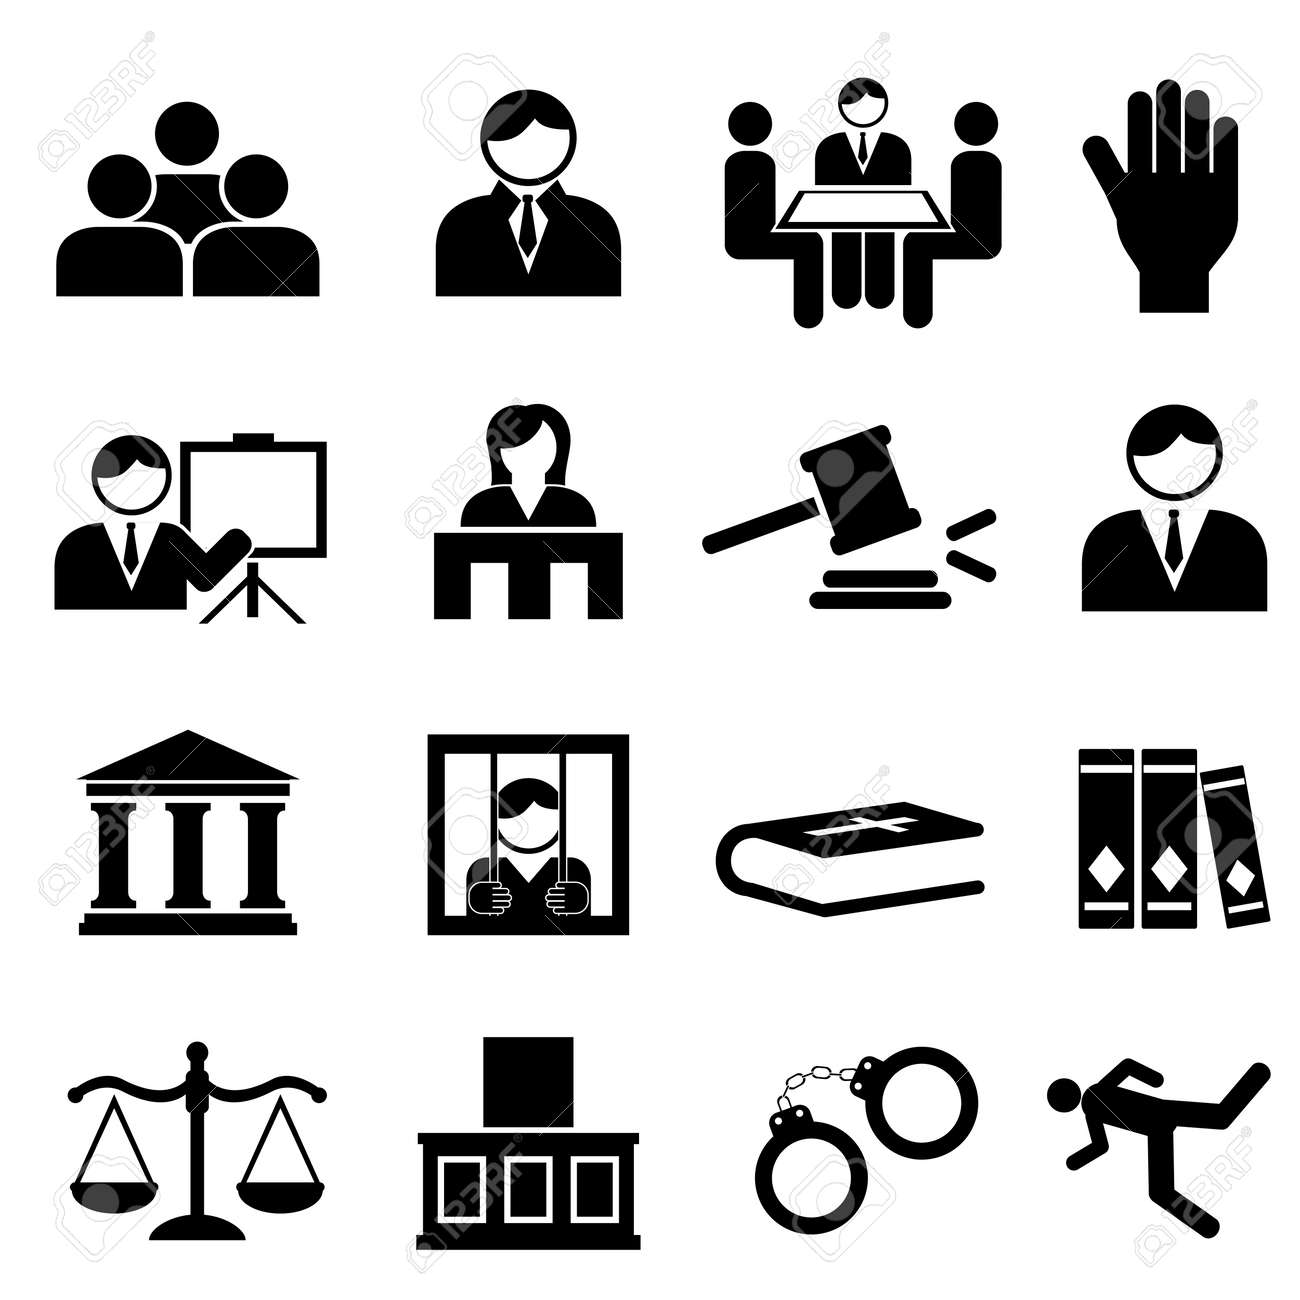 Justice and legal icon set - 20864003